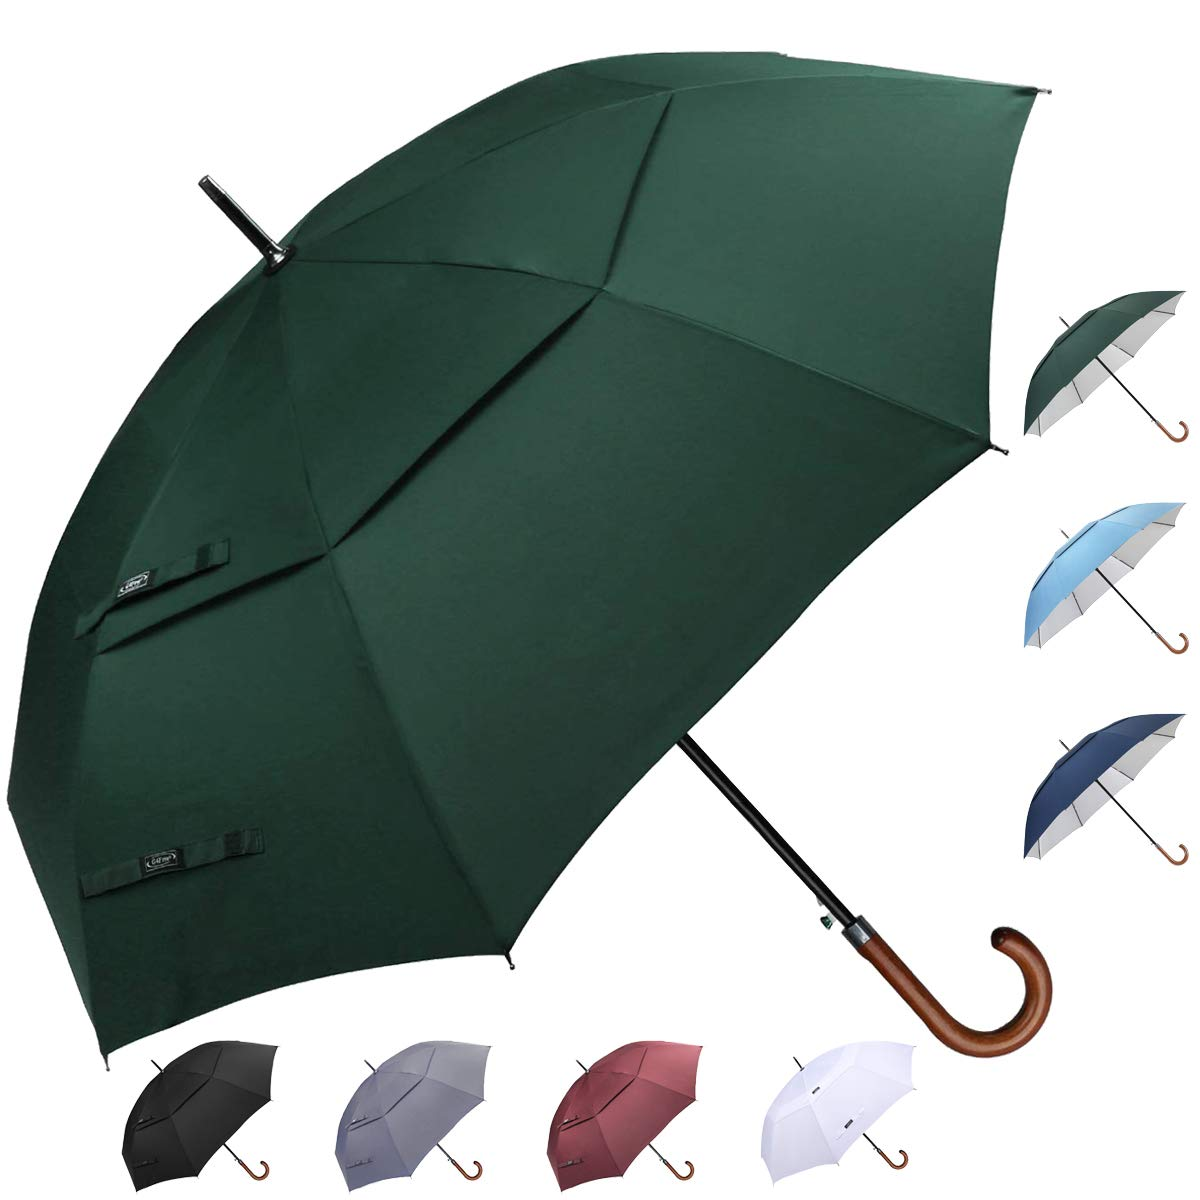 G4Free Wooden J Handle Classic Golf Umbrella Windproof Auto Open 52 inch Large Oversized Double Canopy Vented Rainproof Cane Stick Umbrellas for Men Women (Dark Green) by G4Free